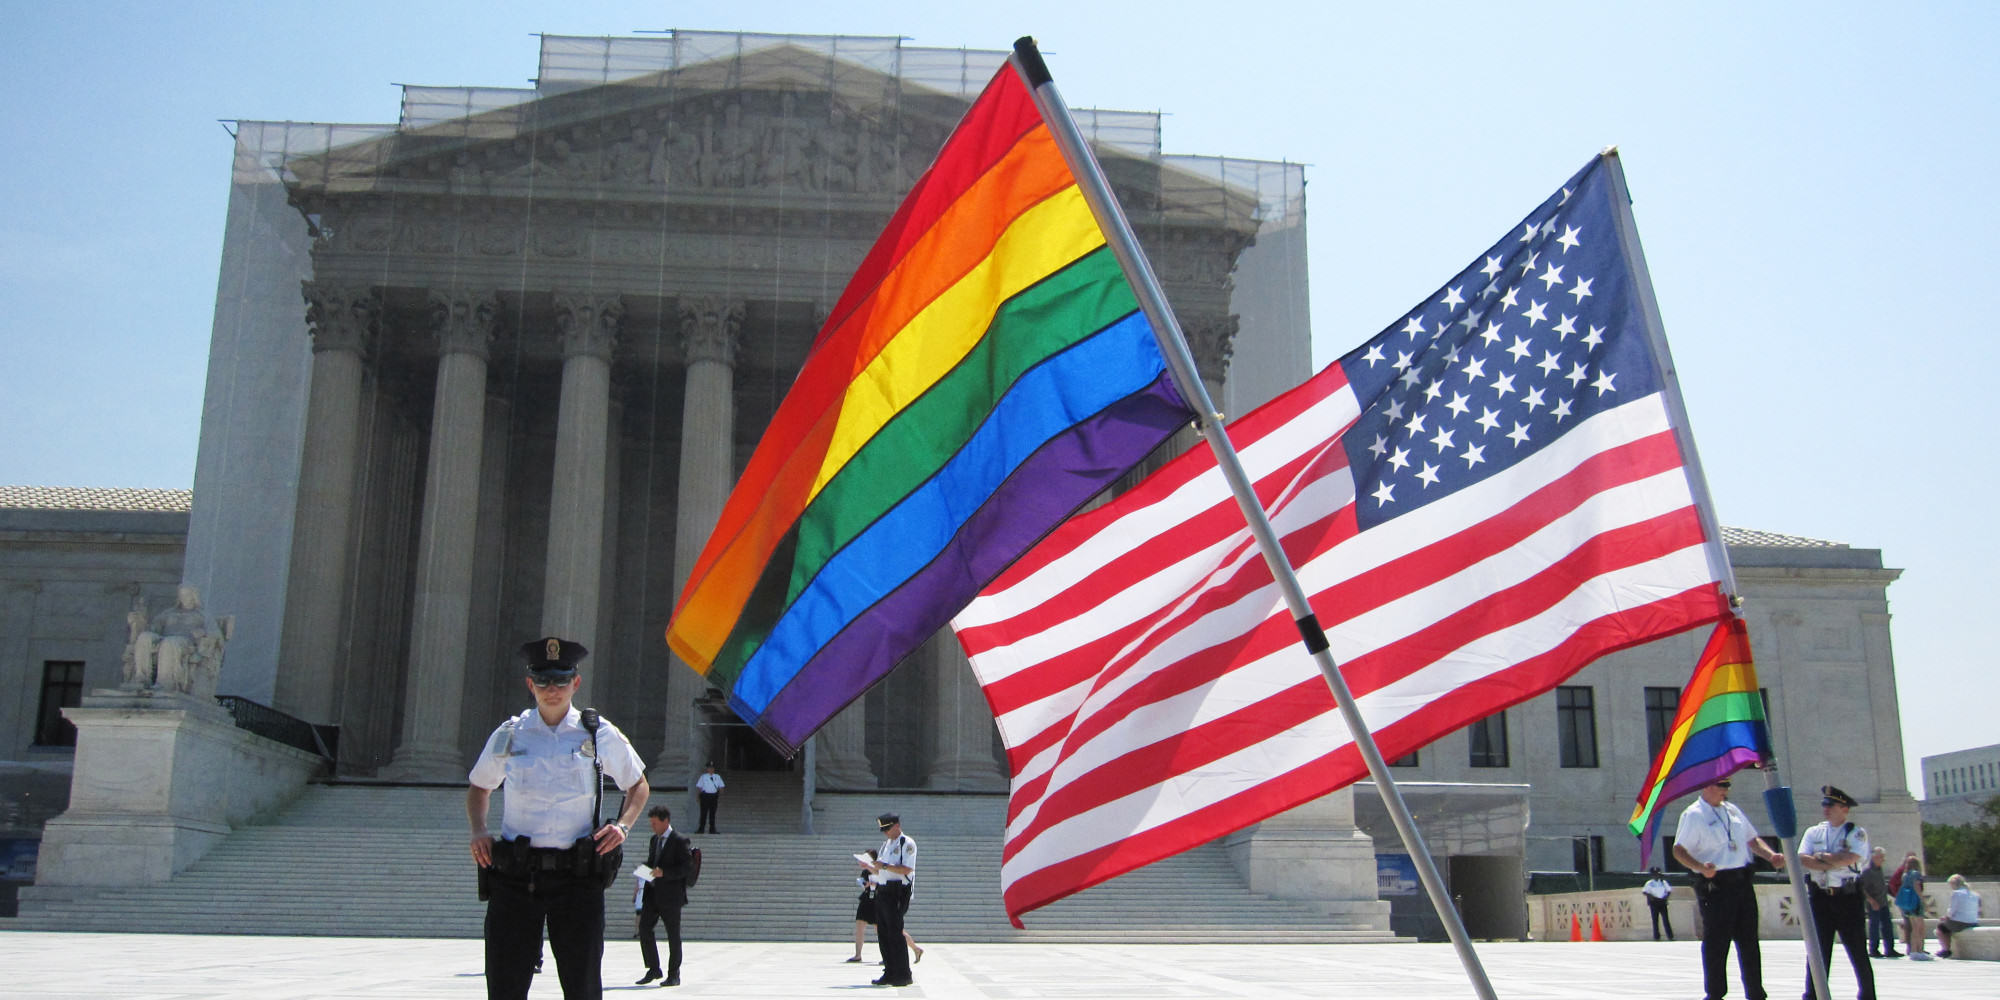 us gay marriage 1 To Avoid Gay Marriage Parts Of Alabama Have Actually Banned Weddings Altogether